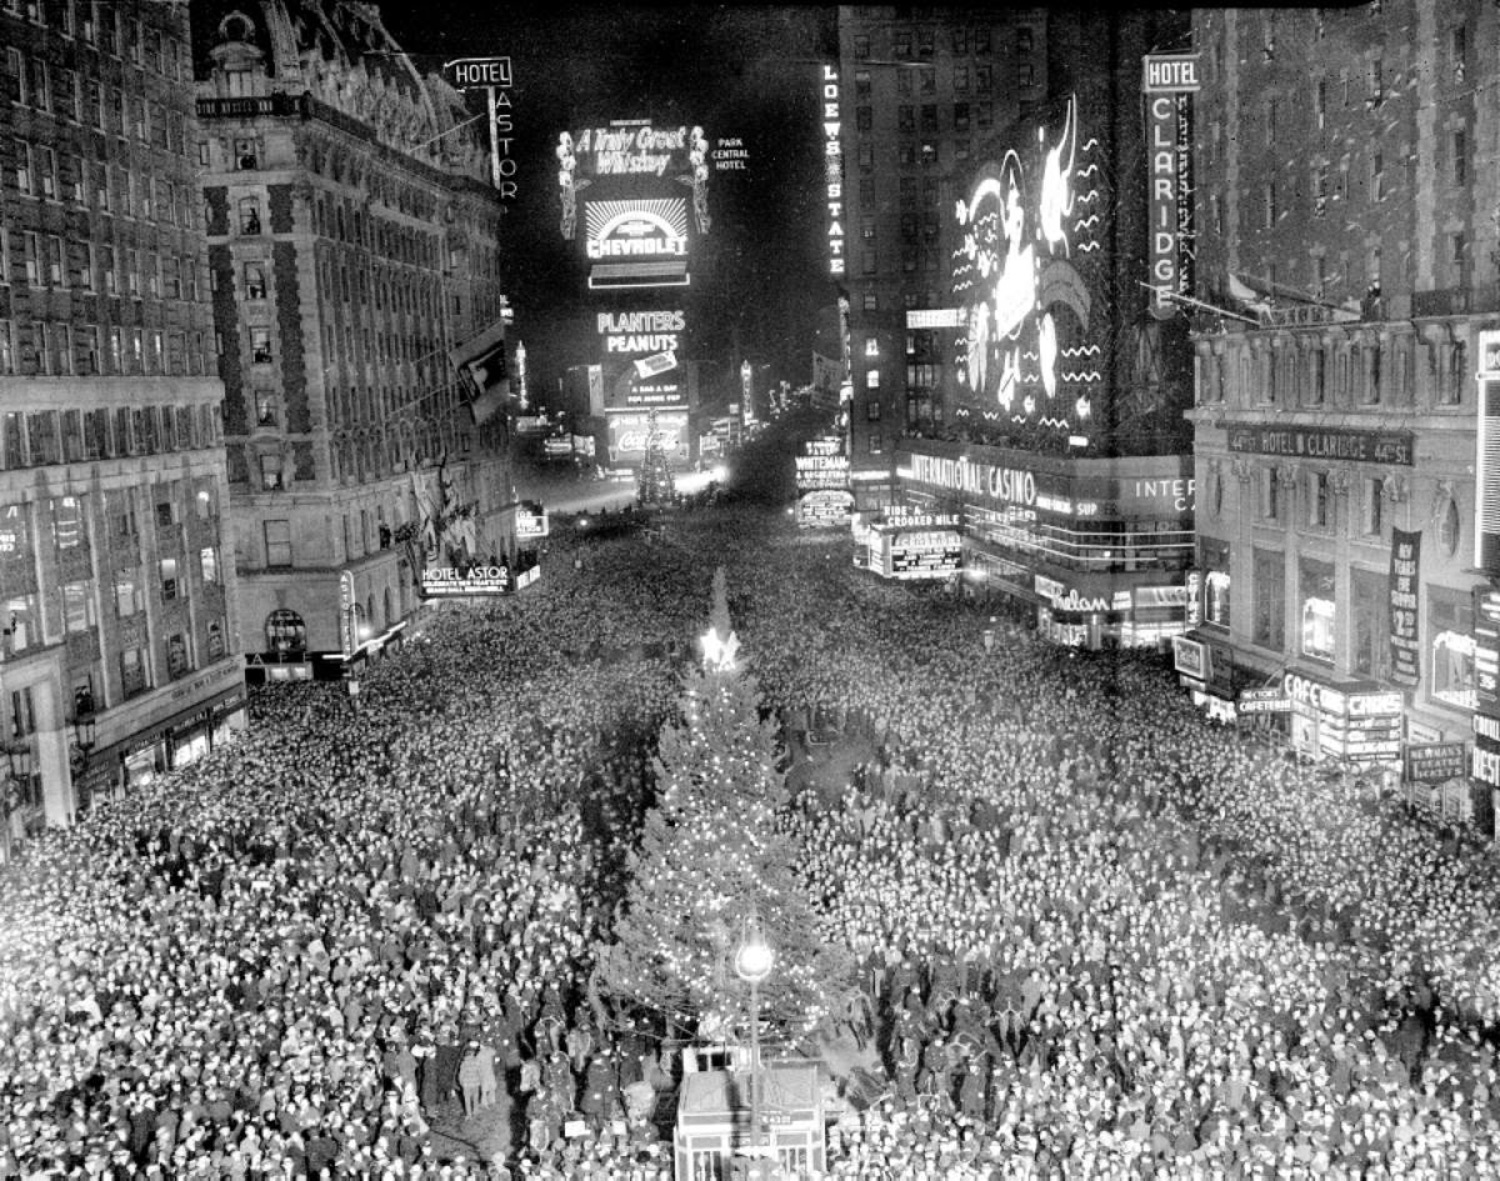 Looking north from 43rd street, a huge crowd gathers around a Christmas tree to welcome in 1938.